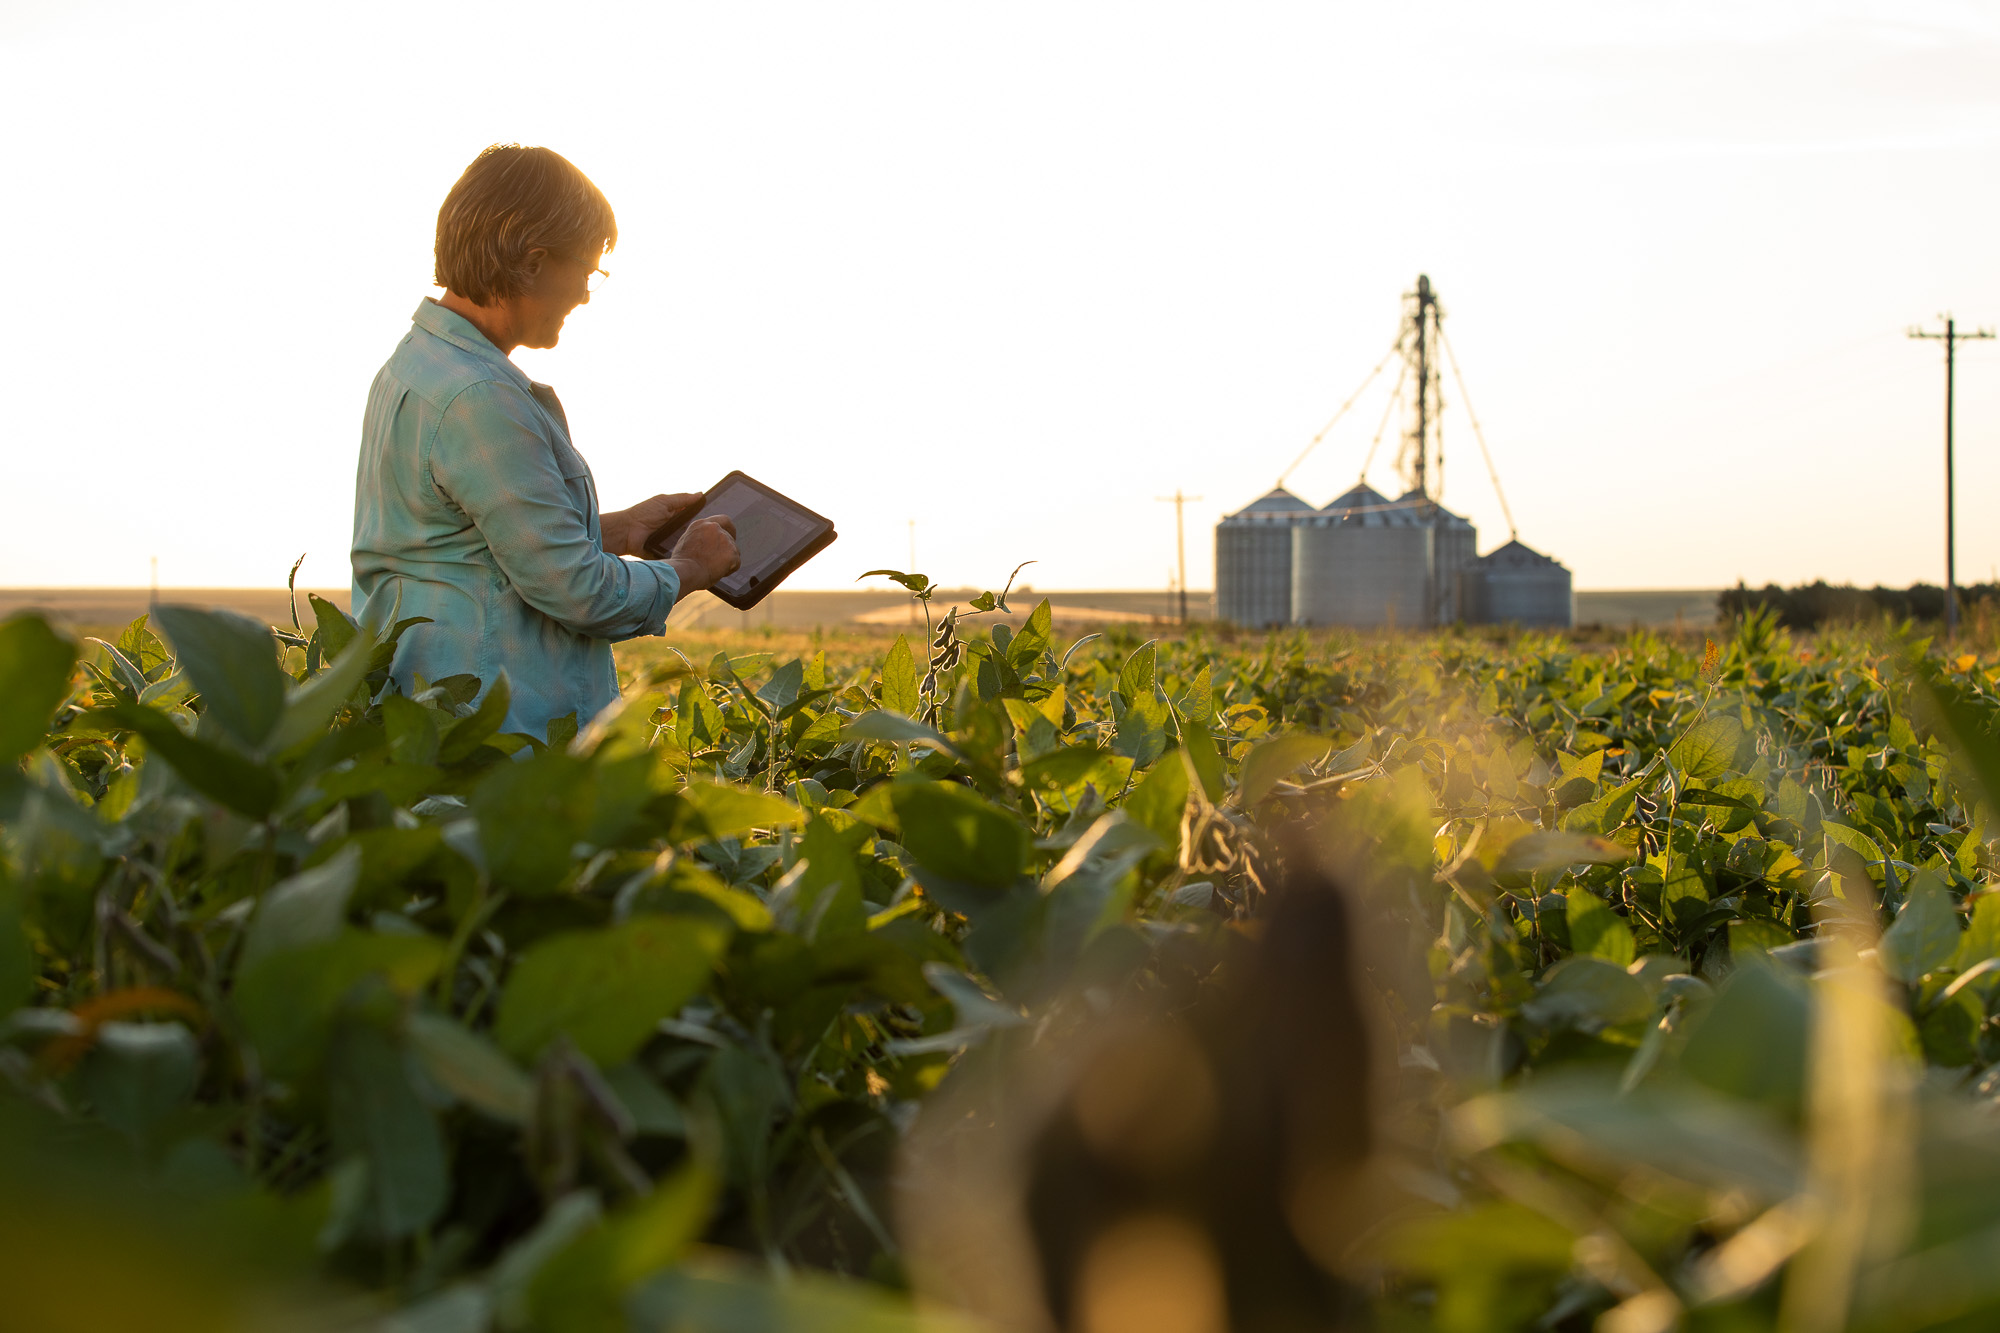 Farmer with Ipad (credits: The United Soybean Board / Flickr Creative Commons Attribution 2.0 Generic (CC BY 2.0))